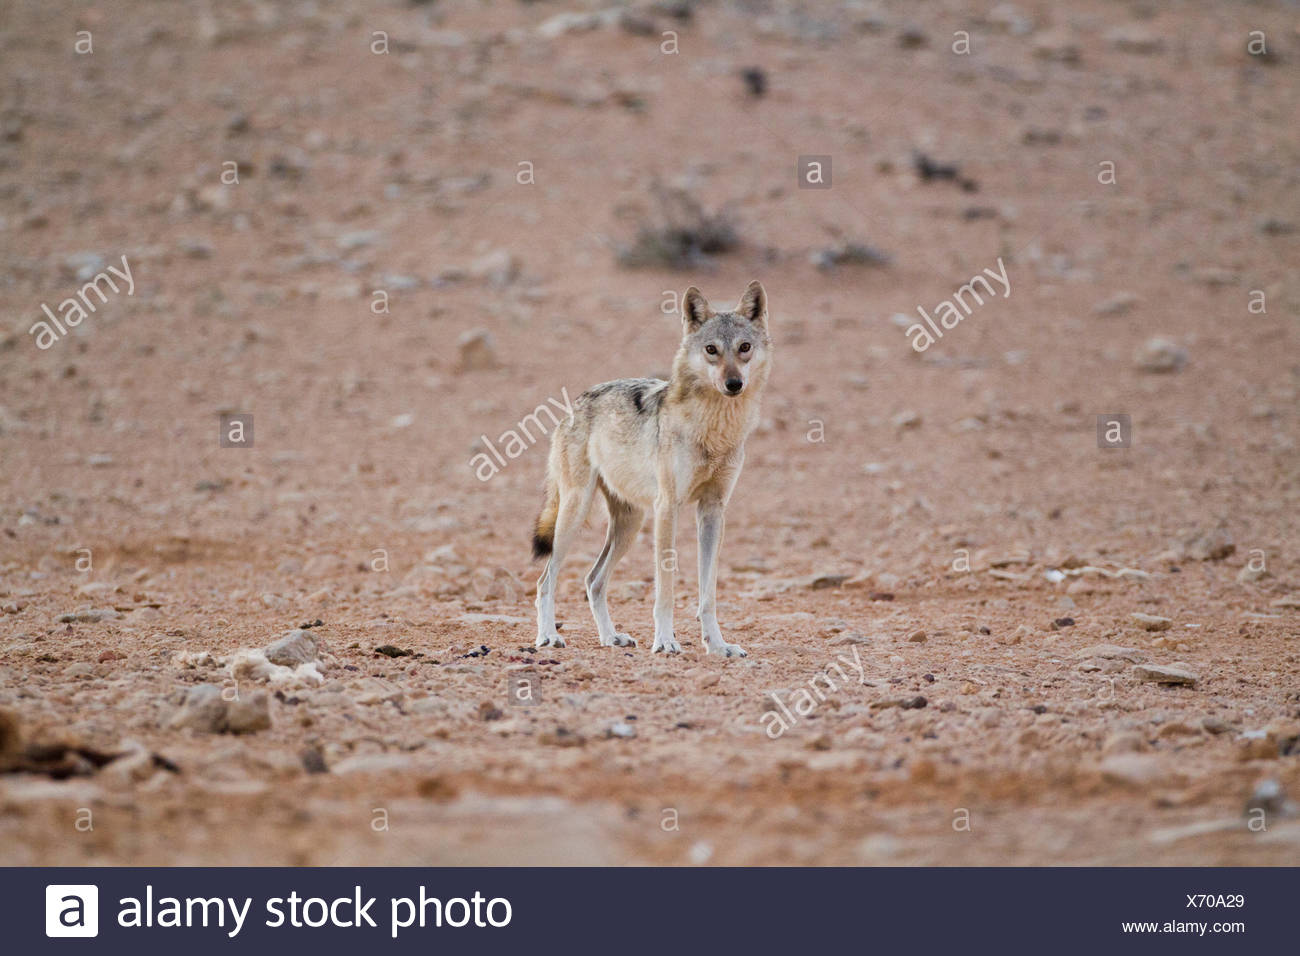 Arabian wolf (aka desert wolf Canis lupus arabs). This wolf is  subspecies of gray wolf. Photographed in Israel, Negev desert - Stock Image